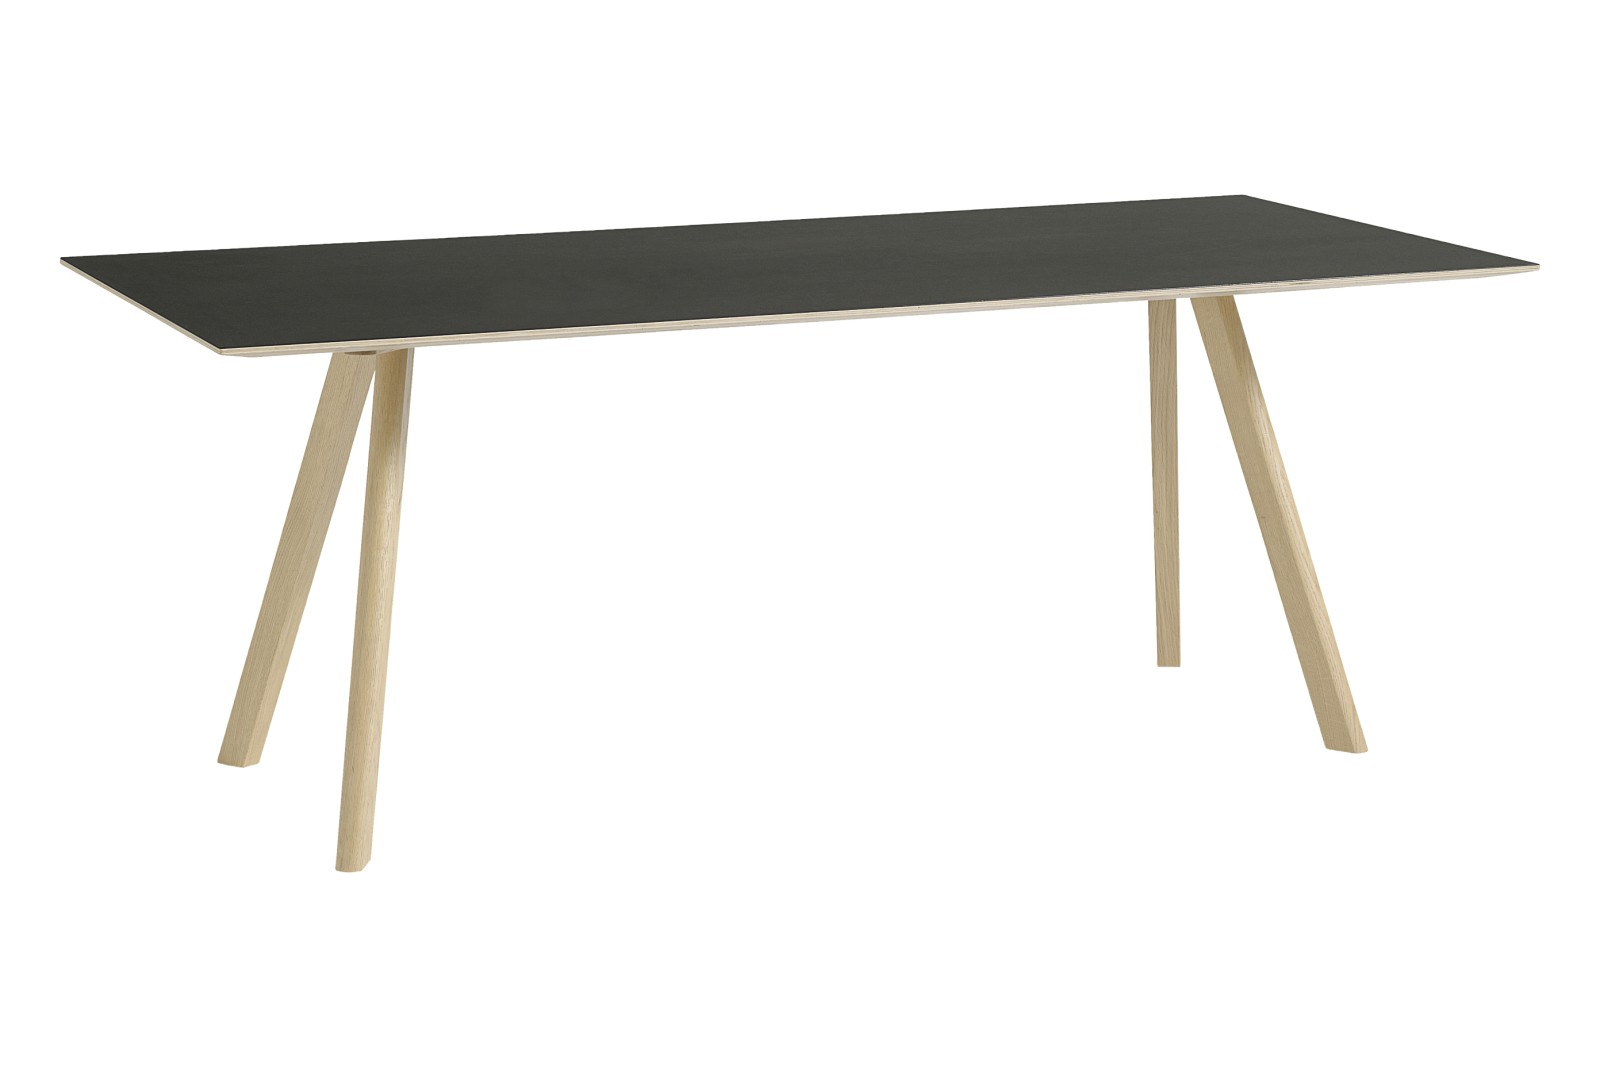 CPH 30 Rectangular Dining Table Linoleum Black / Wood Matt Oak, 200 x 90 cm